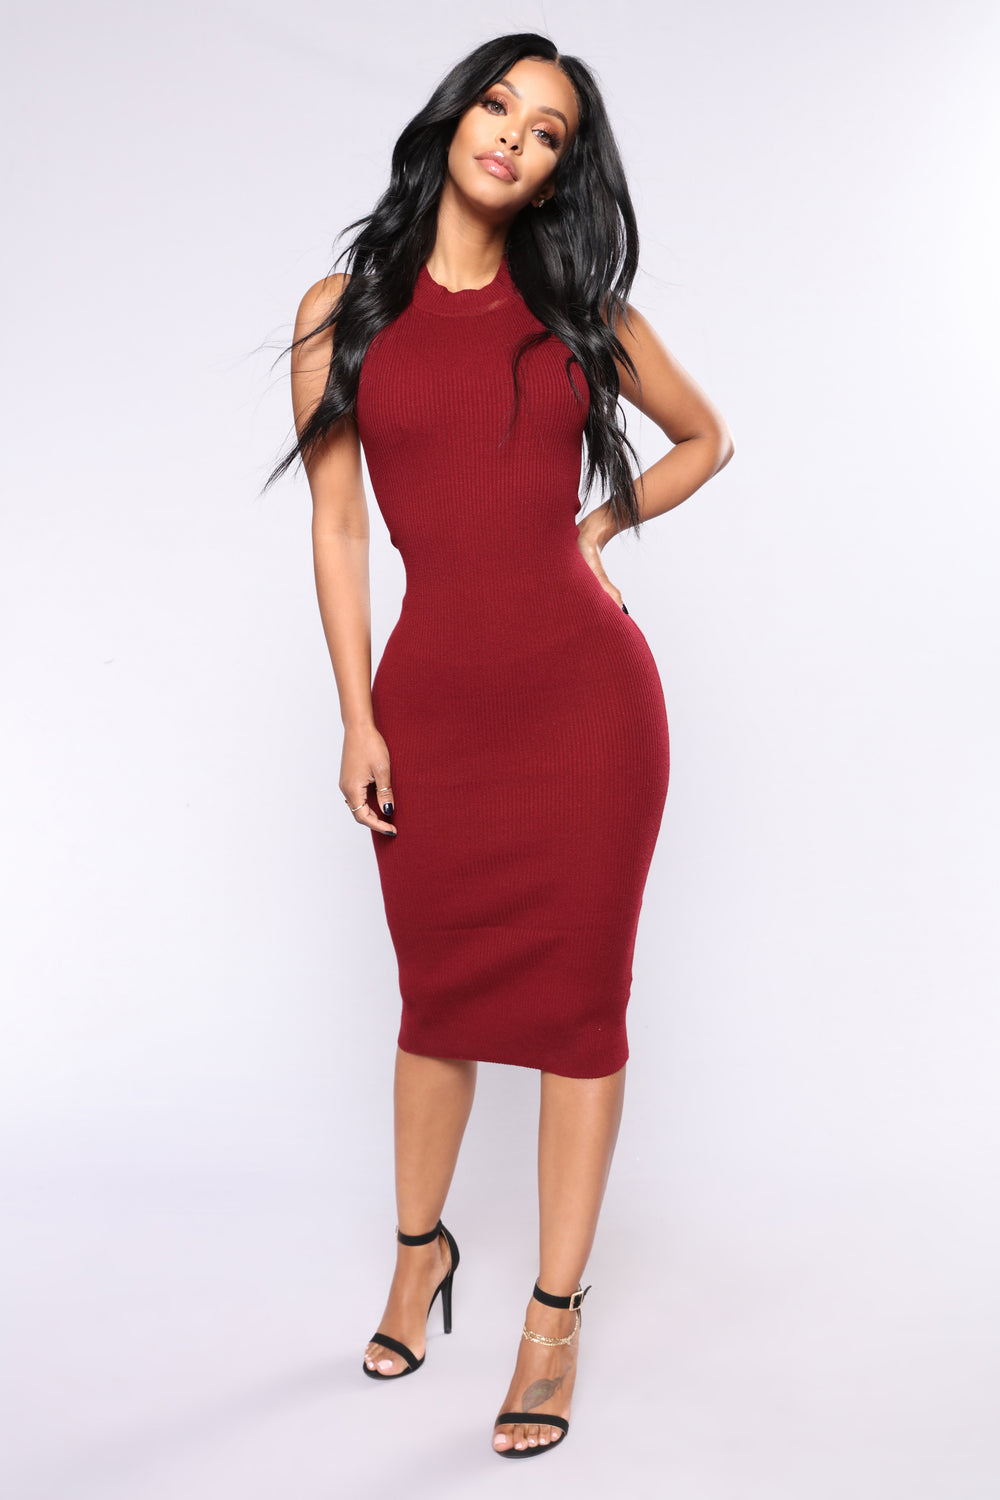 Alysson Knit Dress - Burgundy